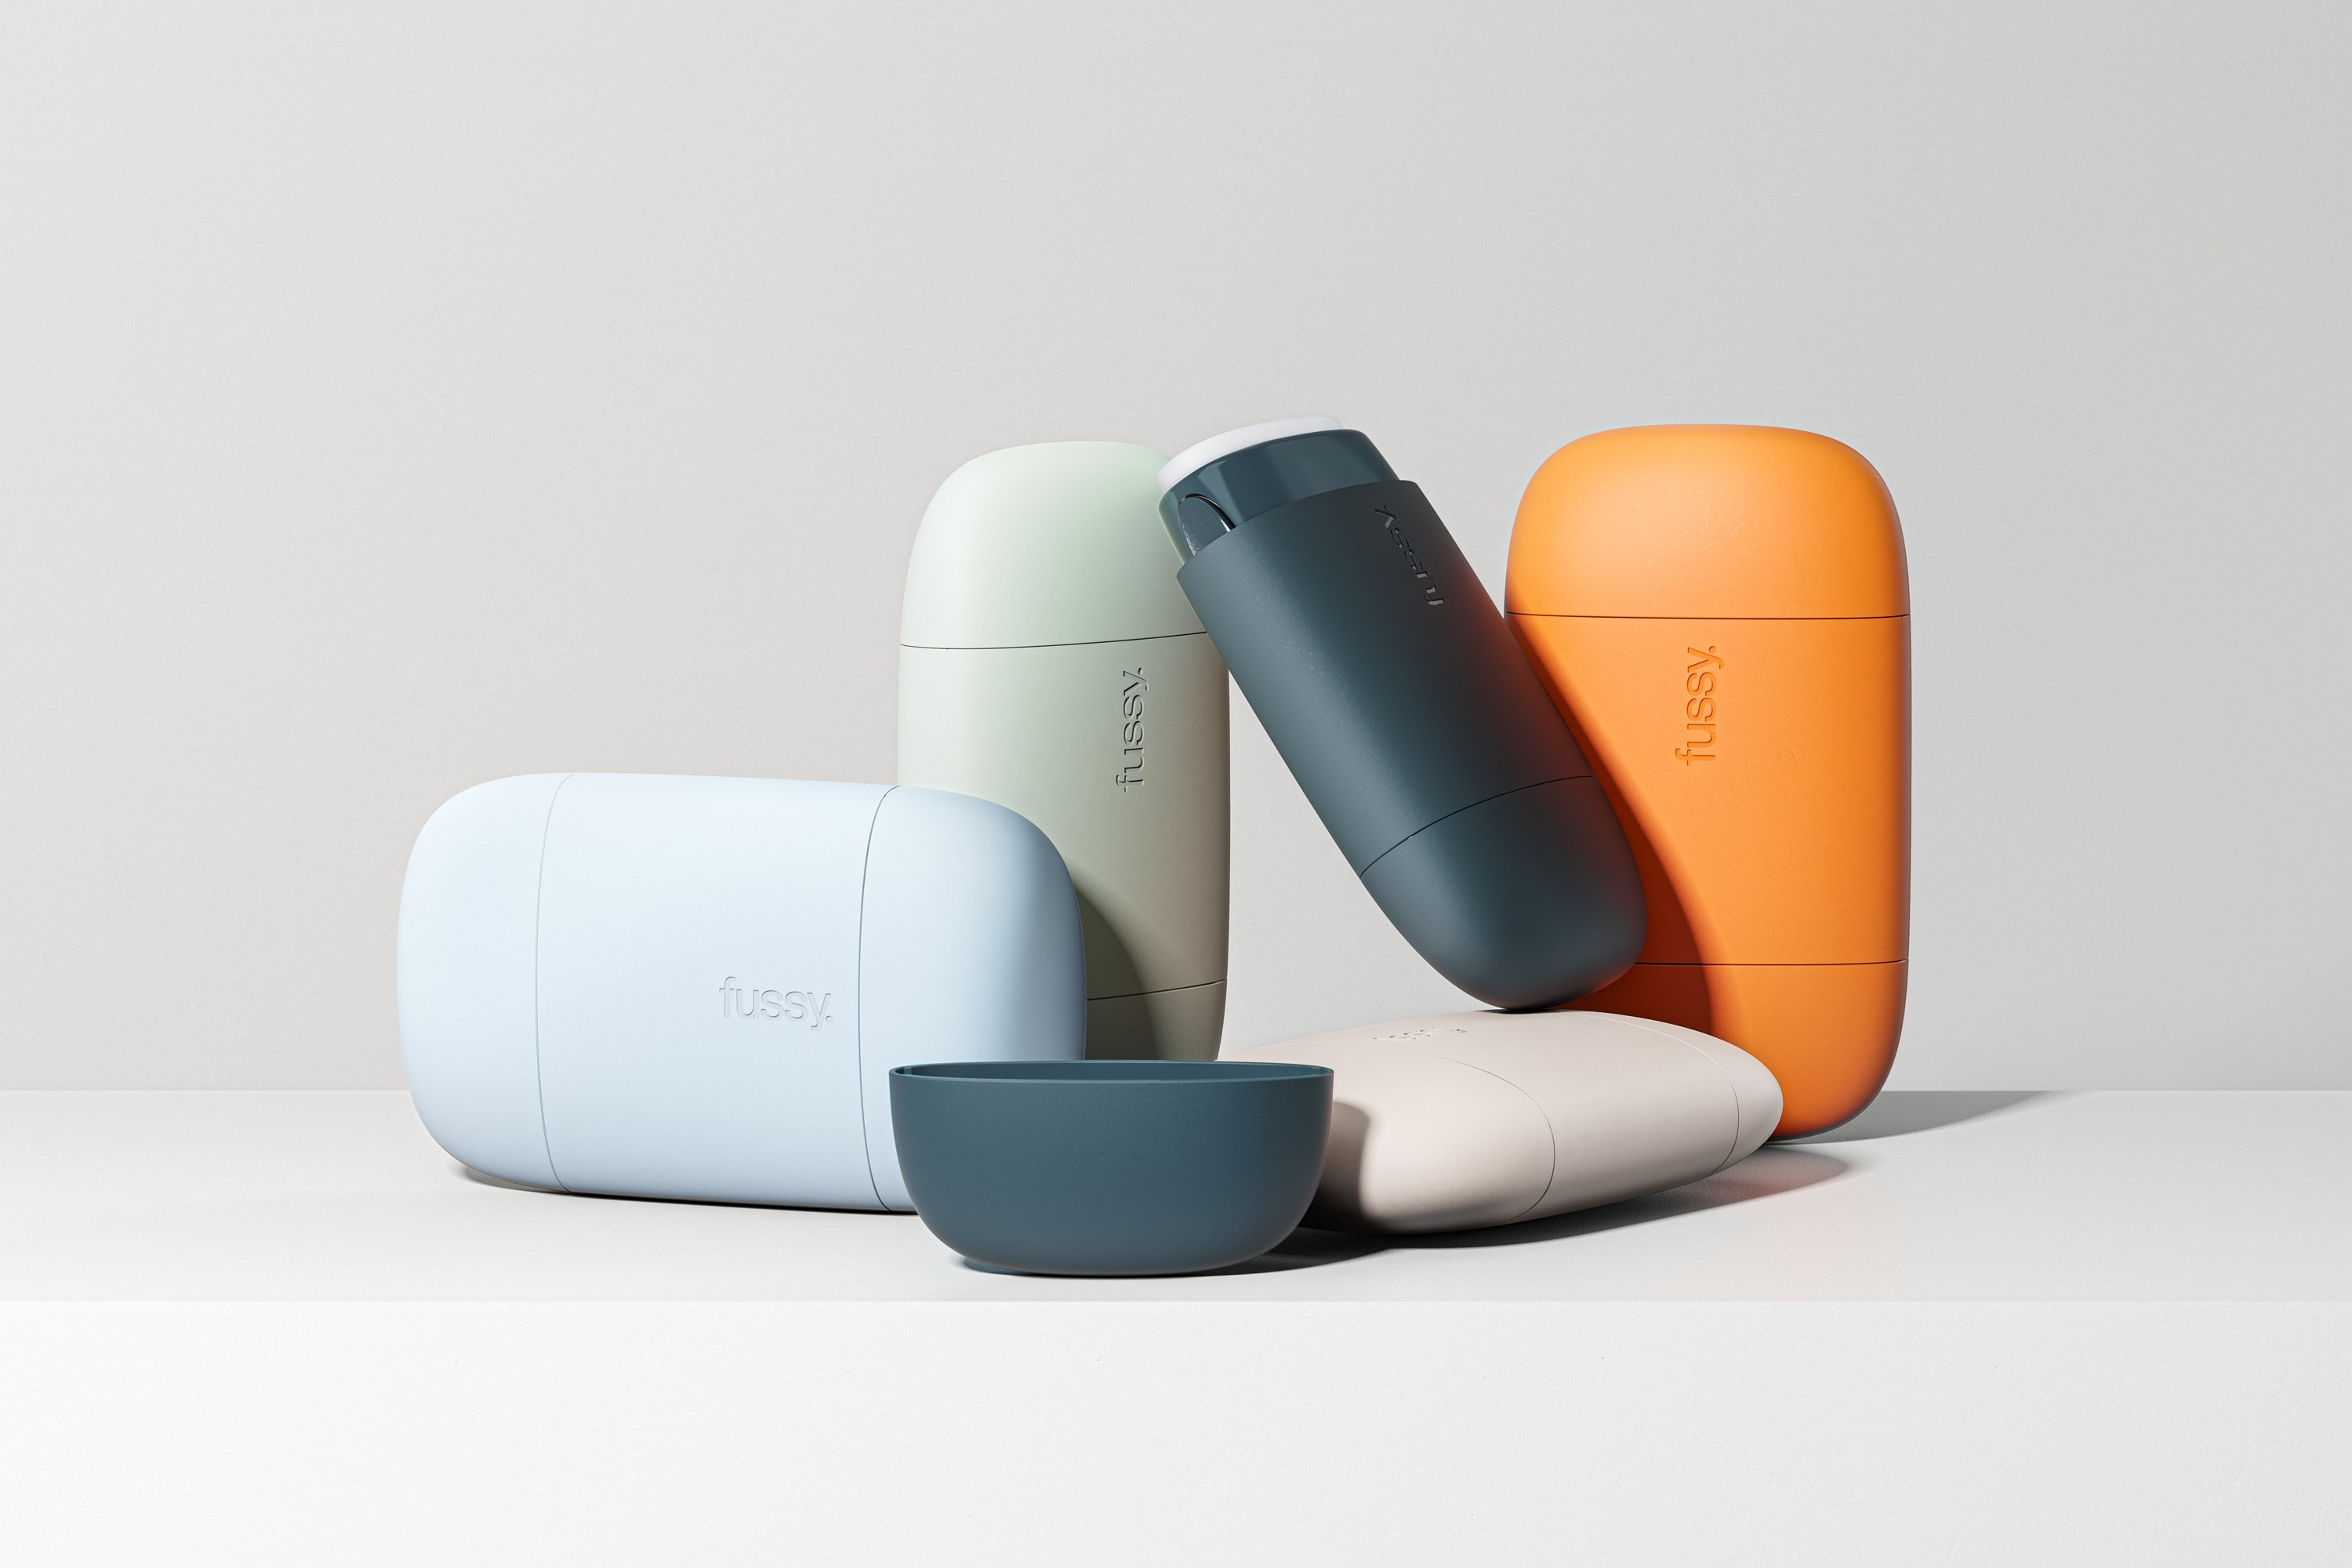 London-Based Studio Blond Takes Inspiration from Pebbles for the Design of Refillable Subscription Deodorant Fussy